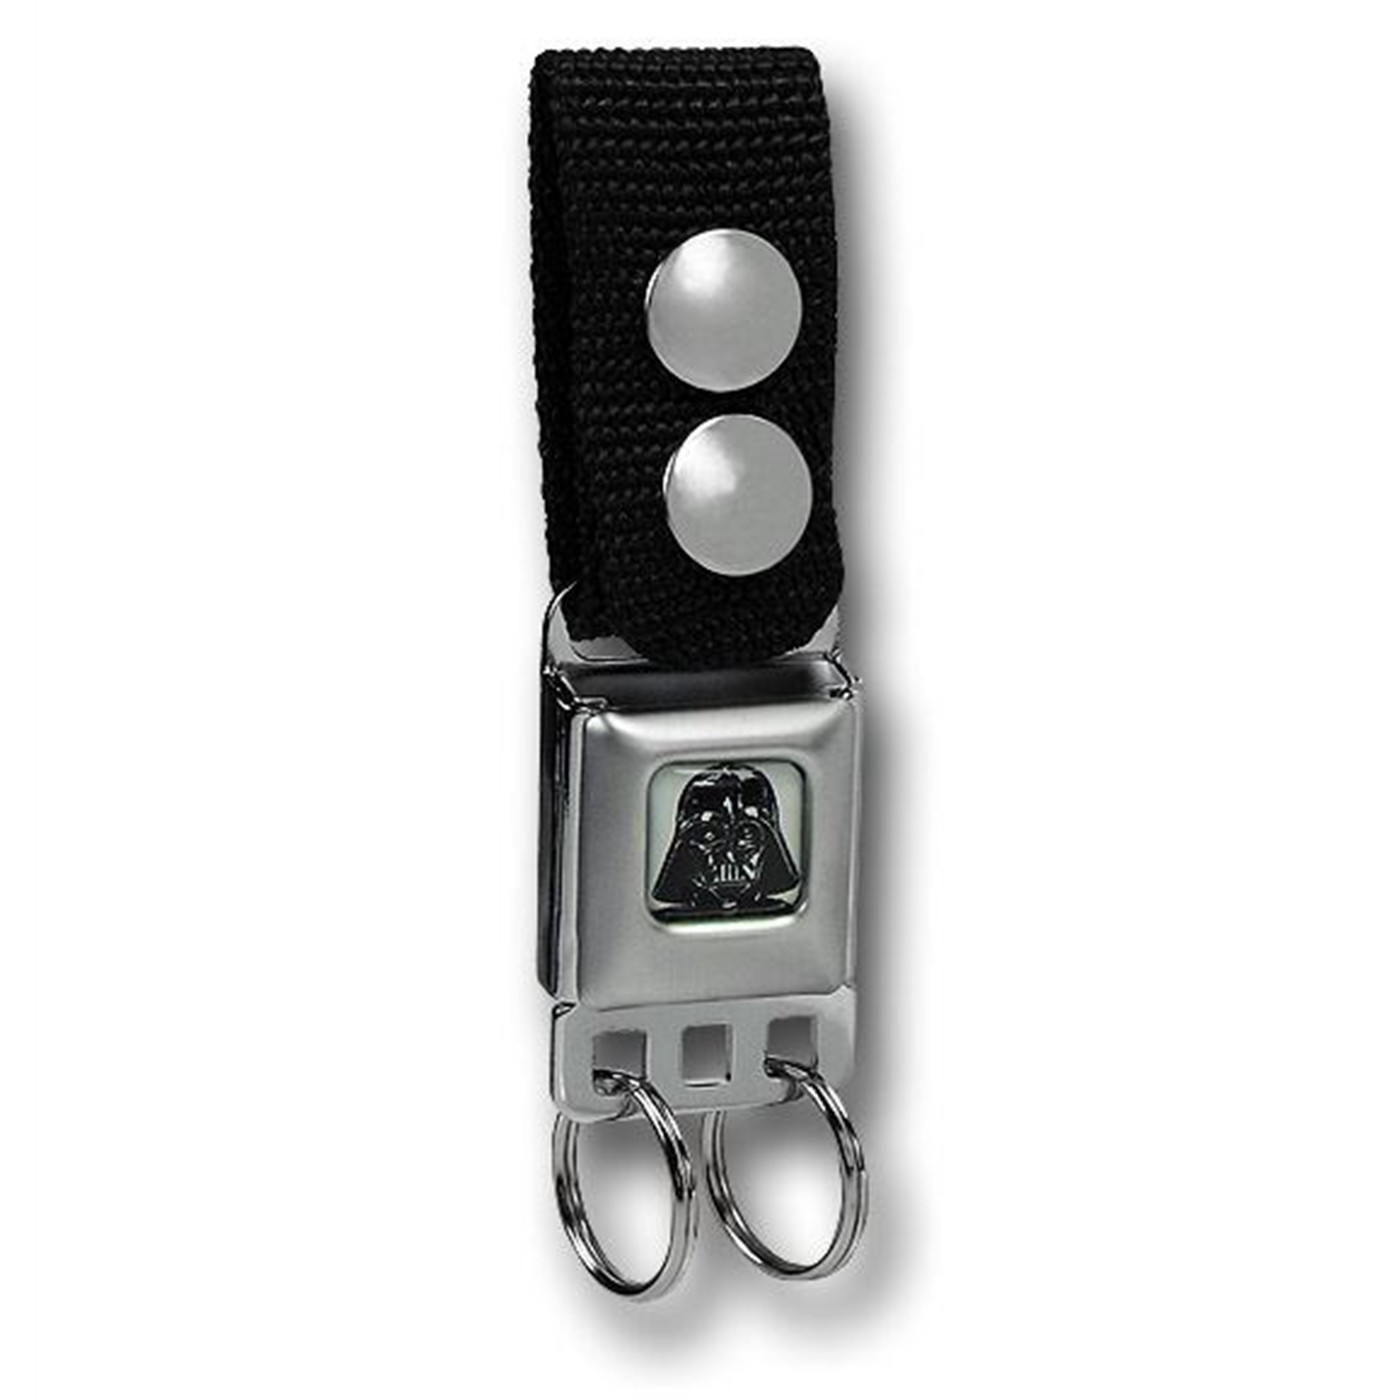 Darth Vader Seatbelt Keychain w/Snap-On Belt Loop